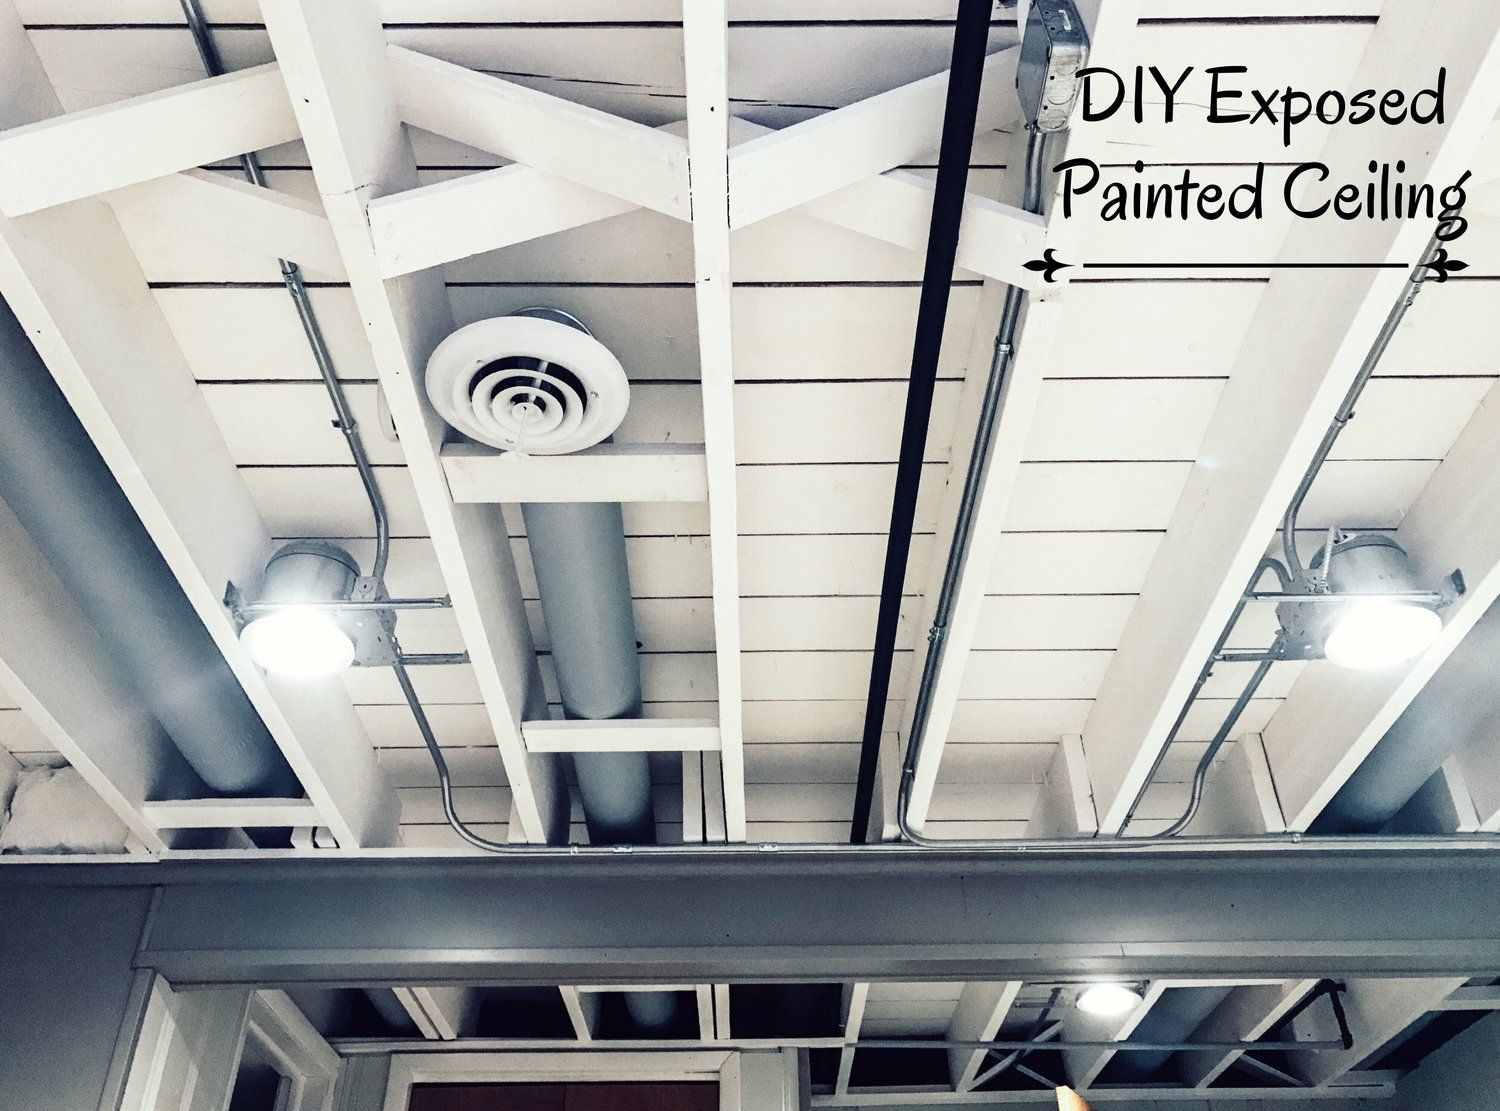 Diy painted basement ceiling project basement ceilings Diy basement finishing ideas